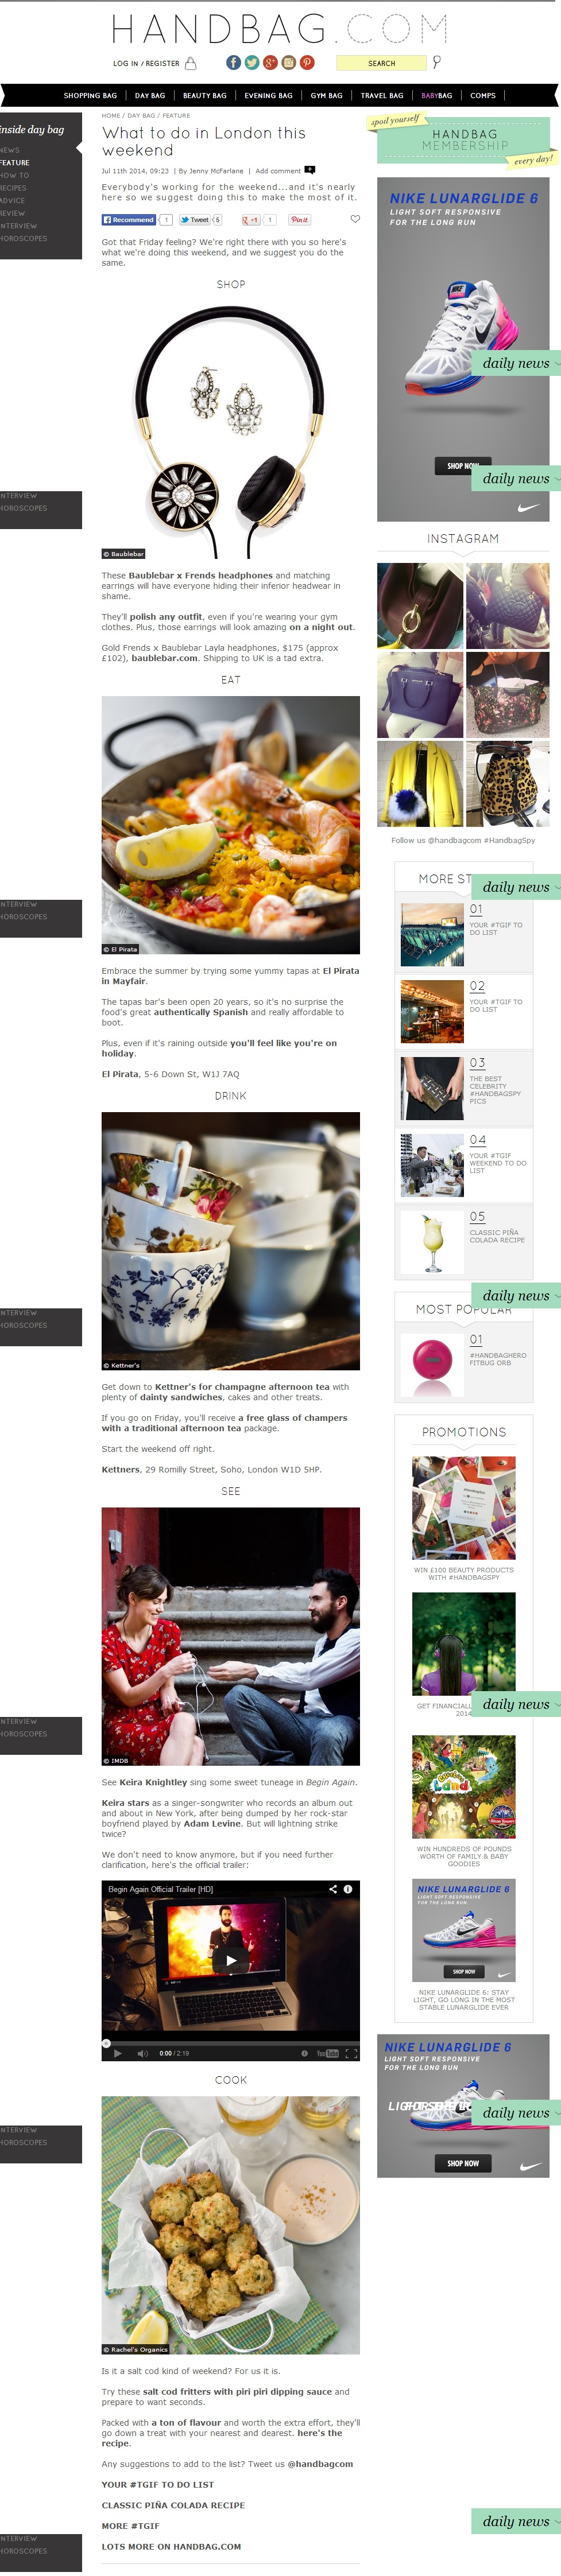 screencapture-www-handbag-com-day-bag-feature-a424247-what-to-do-in-london-this-weekend-html